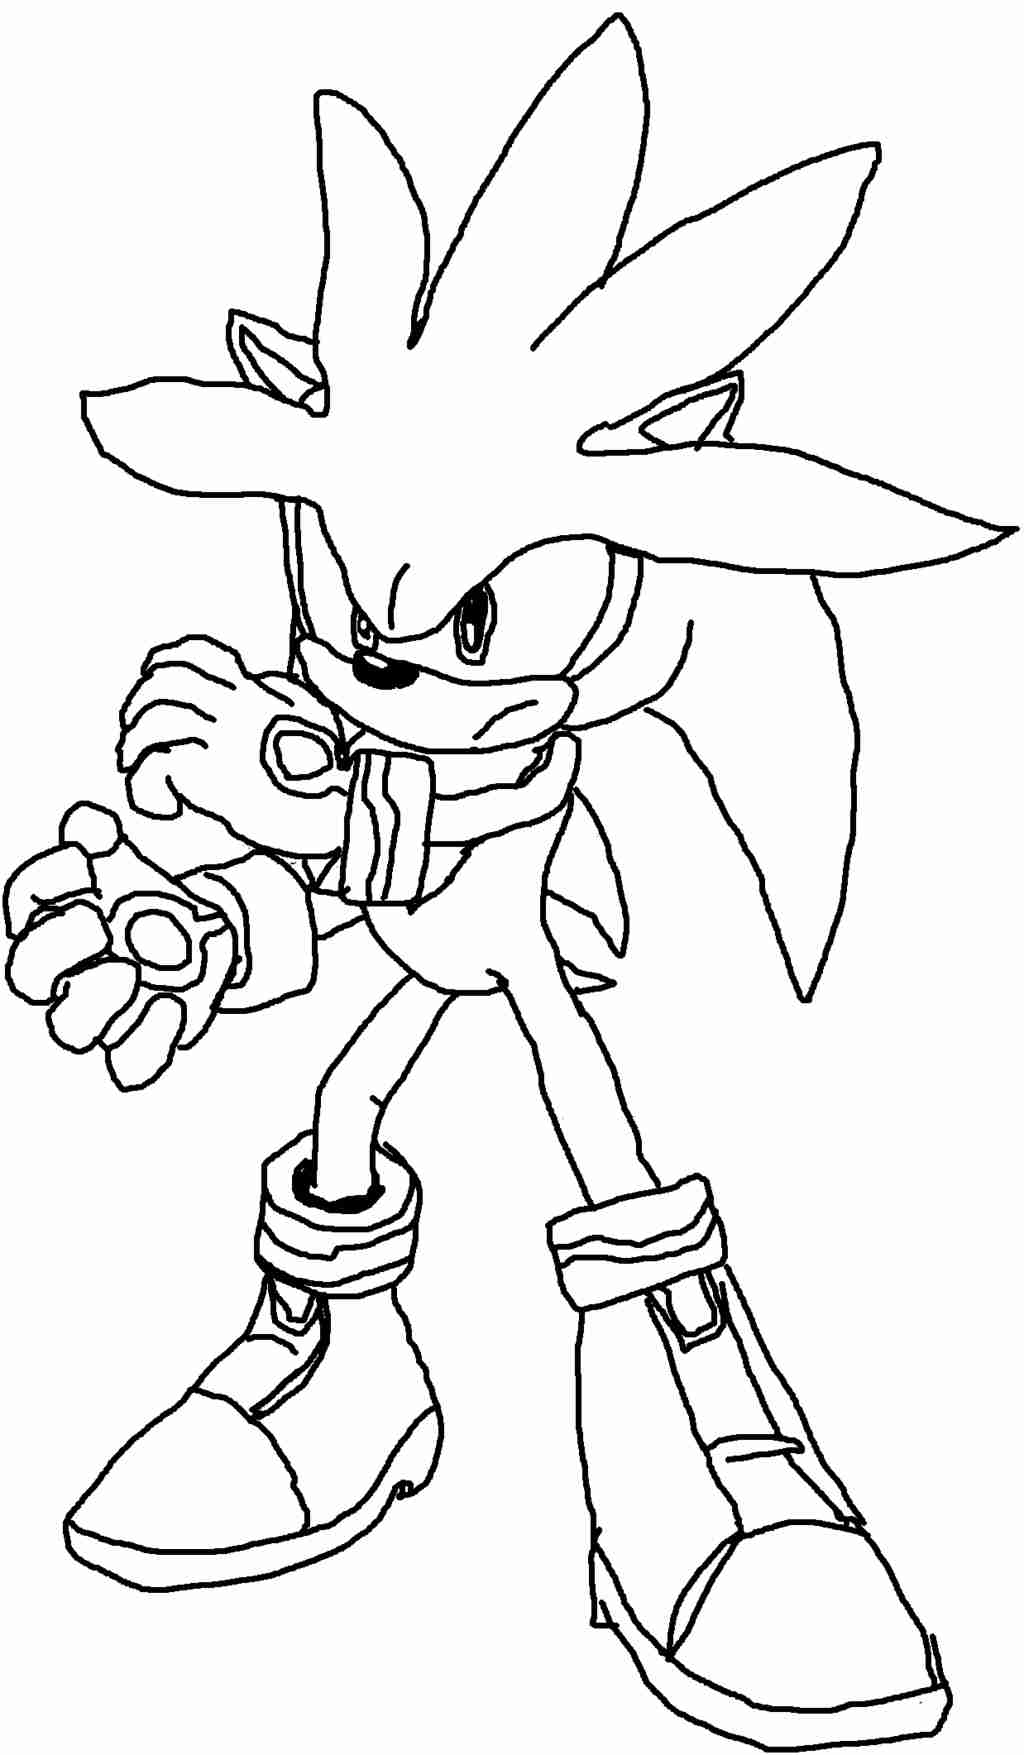 1024x1755 Important Silver The Hedgehog Coloring Pages P